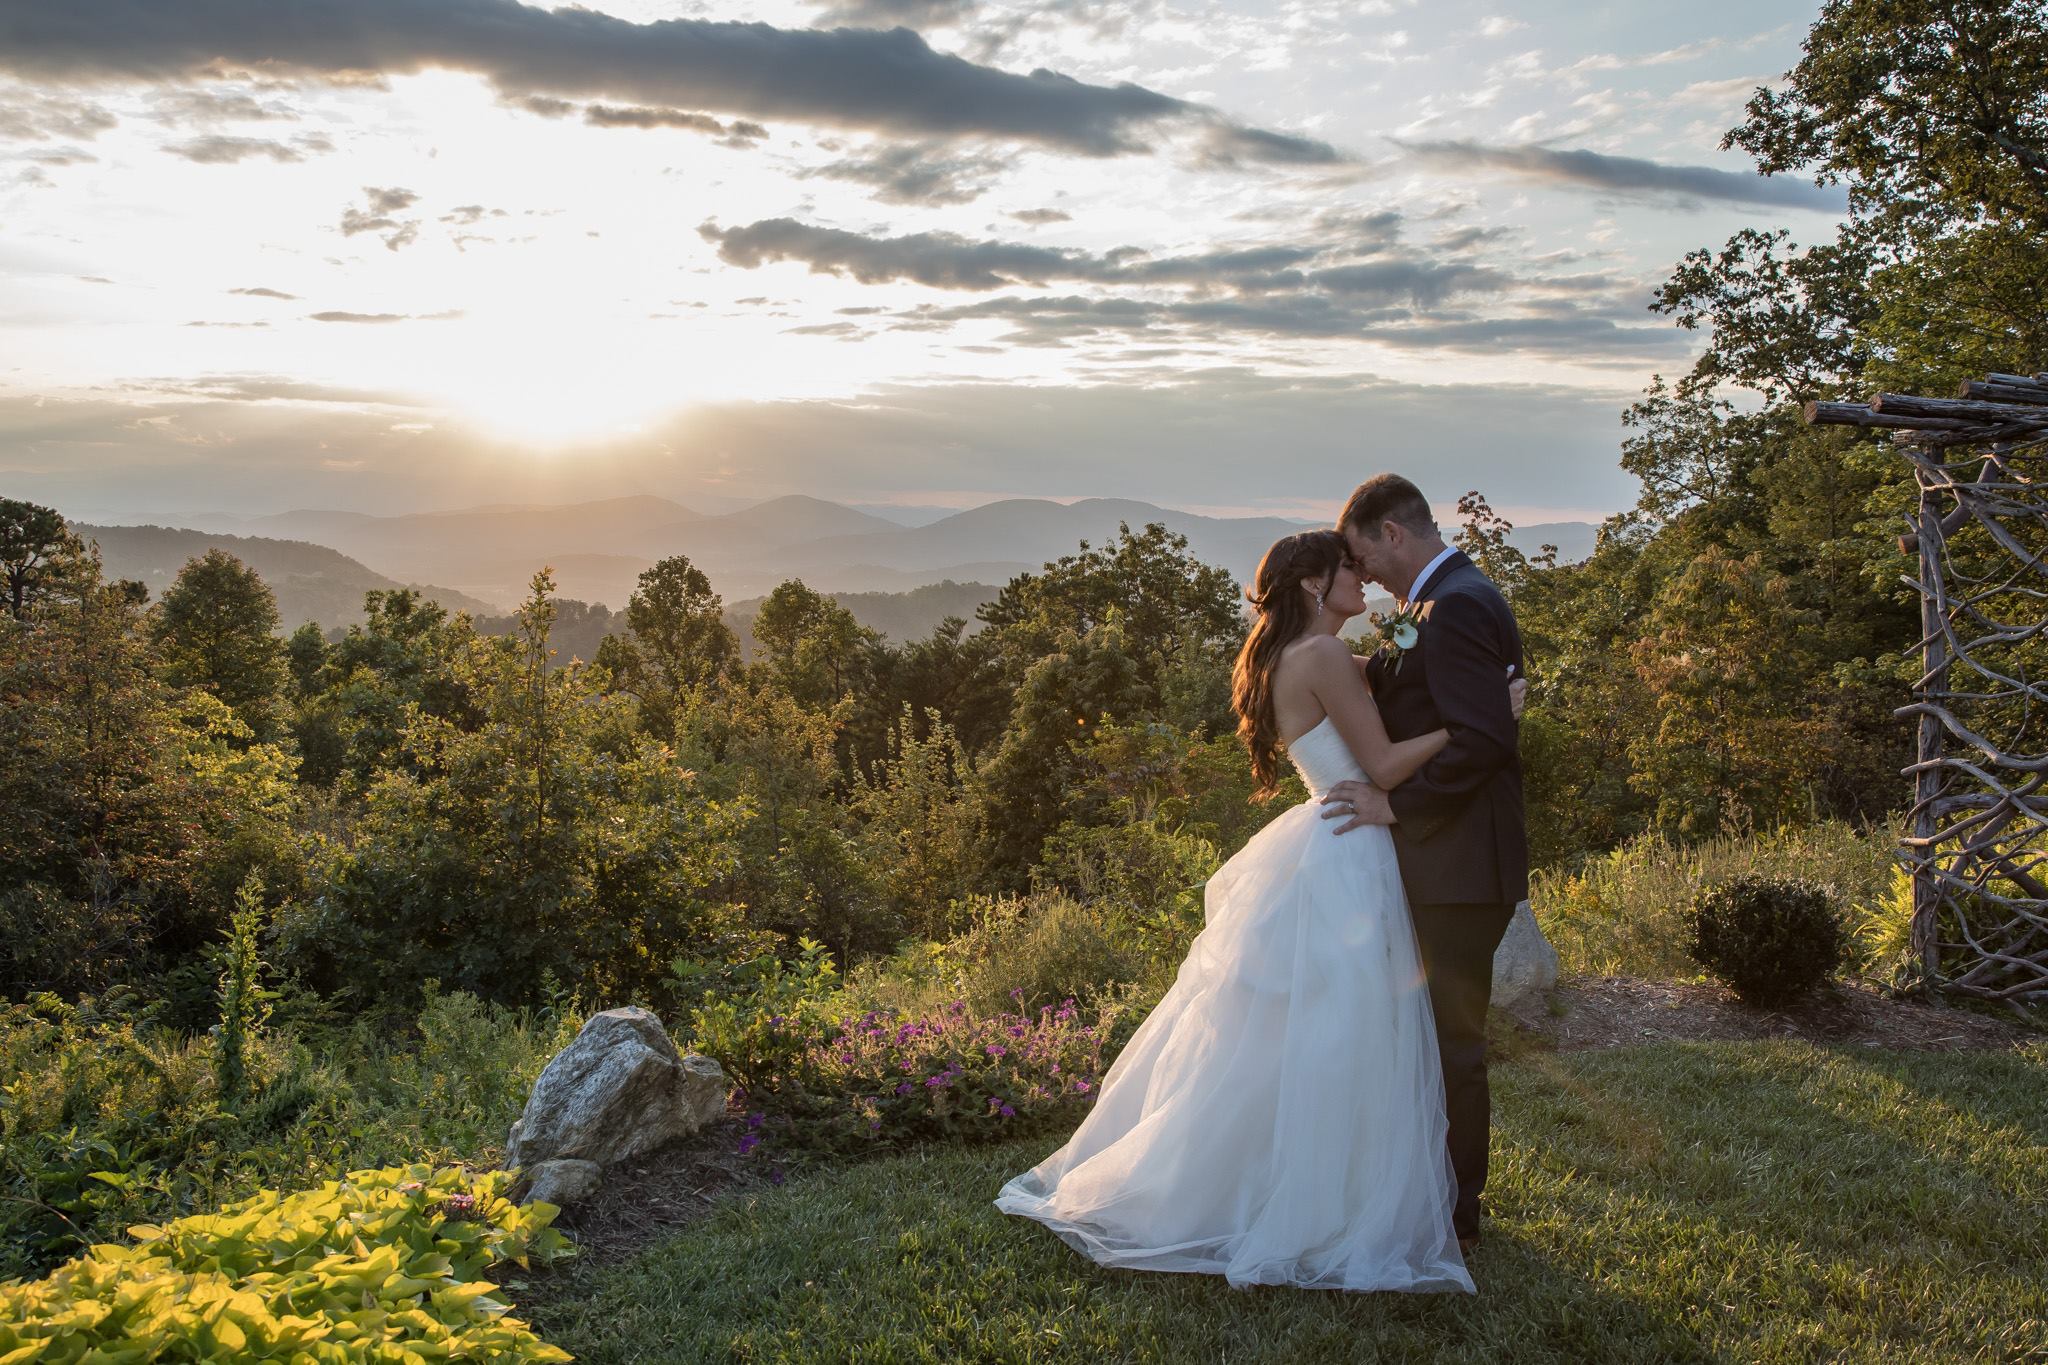 Unique Wedding Venues Near Me For Unforgettable Moment: Mountain Weddings At The Cabin Ridge